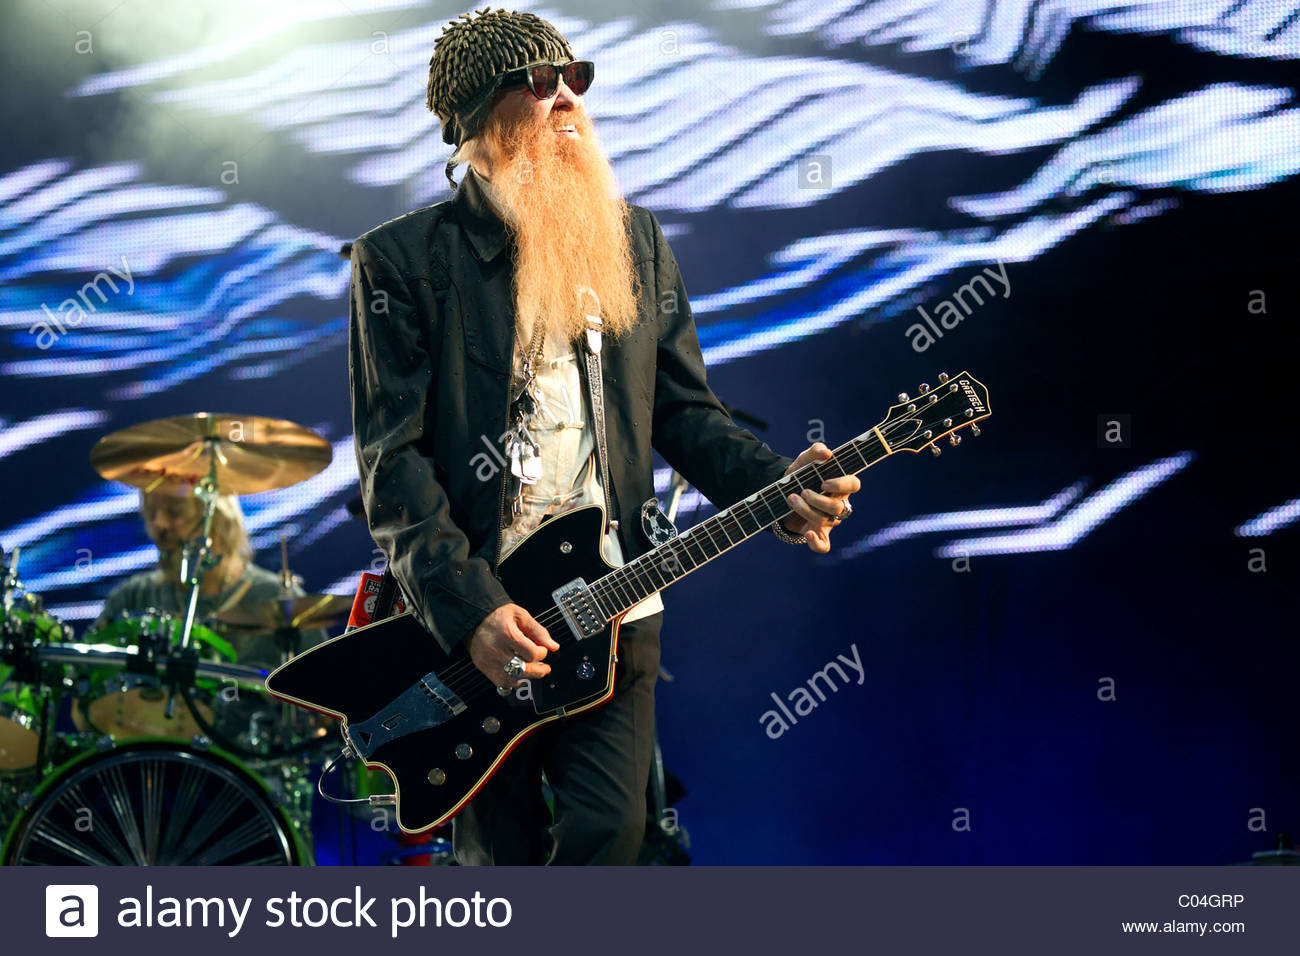 ZZ Top guitar singer and guitar player Billy Gibbons performing live - Stock Image